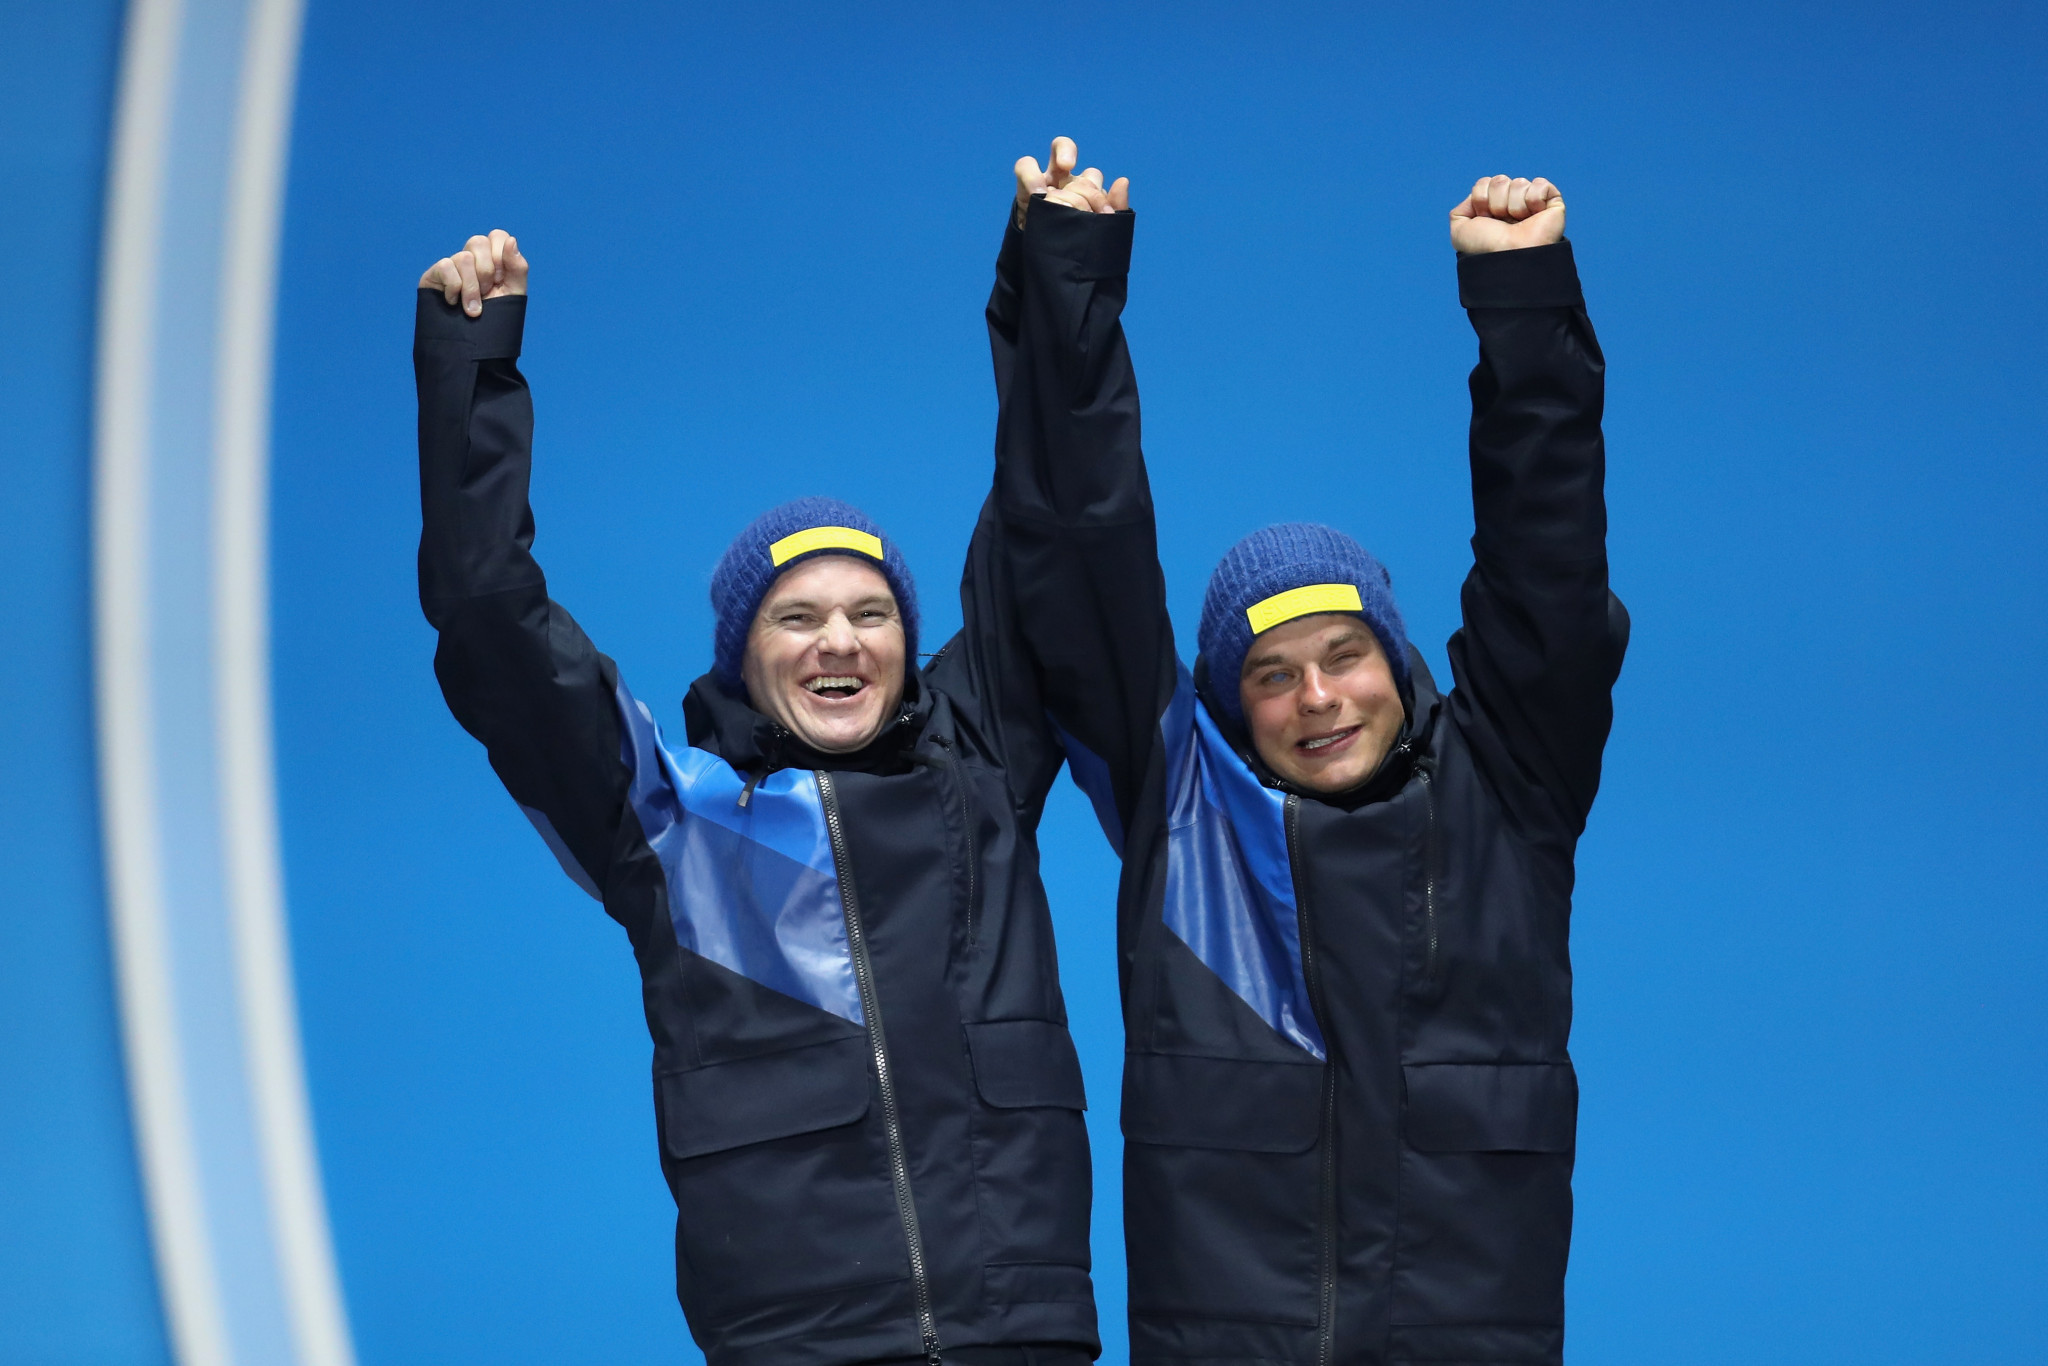 Robin Bryntesson, left, was Zebastian Modin's guide when he won a silver medal at Pyeongchang 2018 ©Getty Images